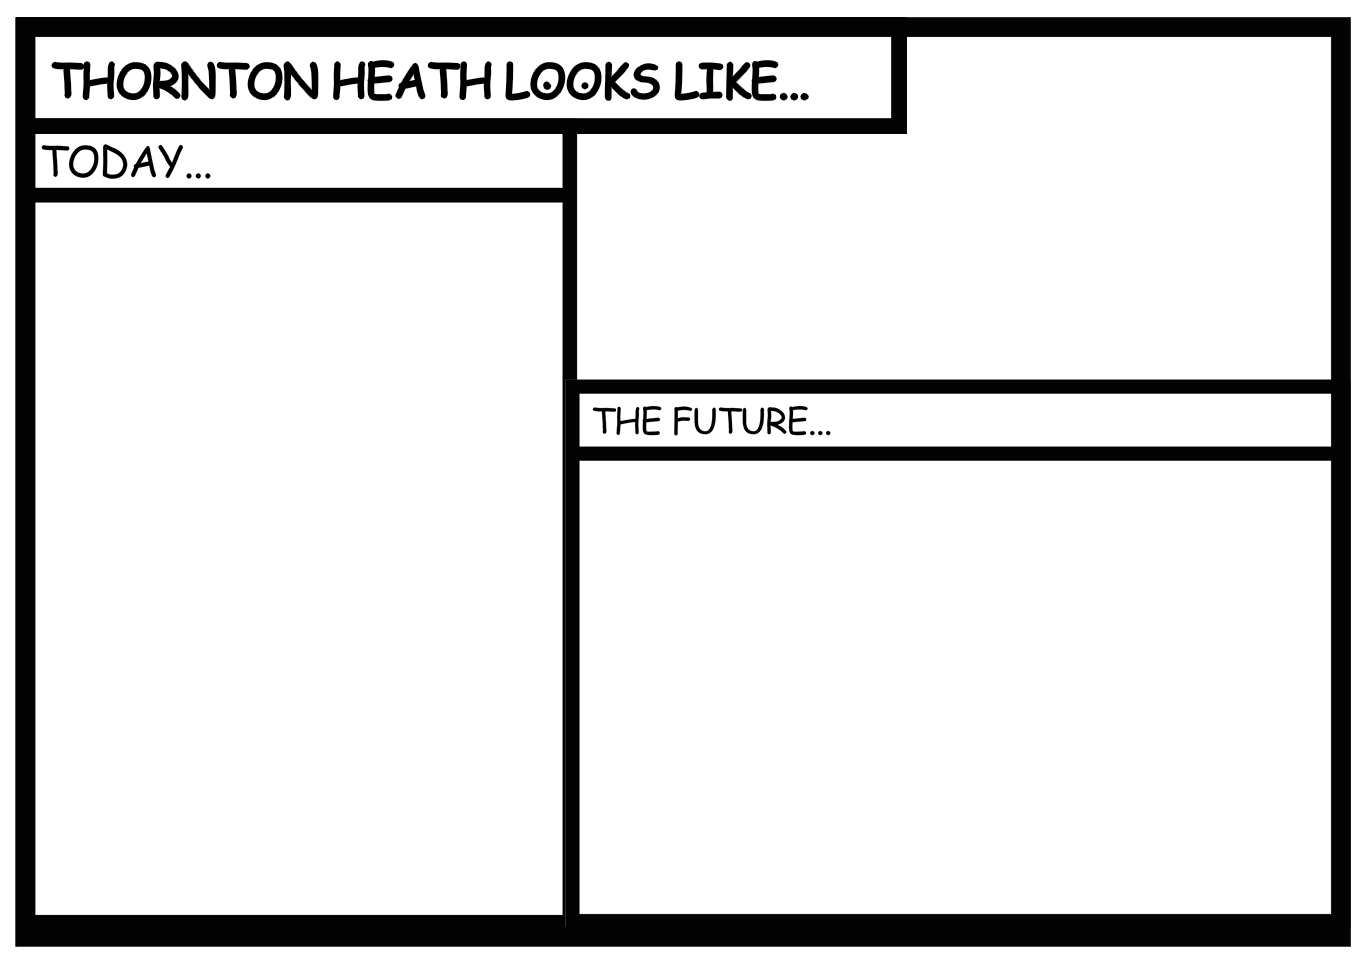 Comic strip with 3 boxes of 'Thornton Heath Looks Like.... / Today..... / The Future.....